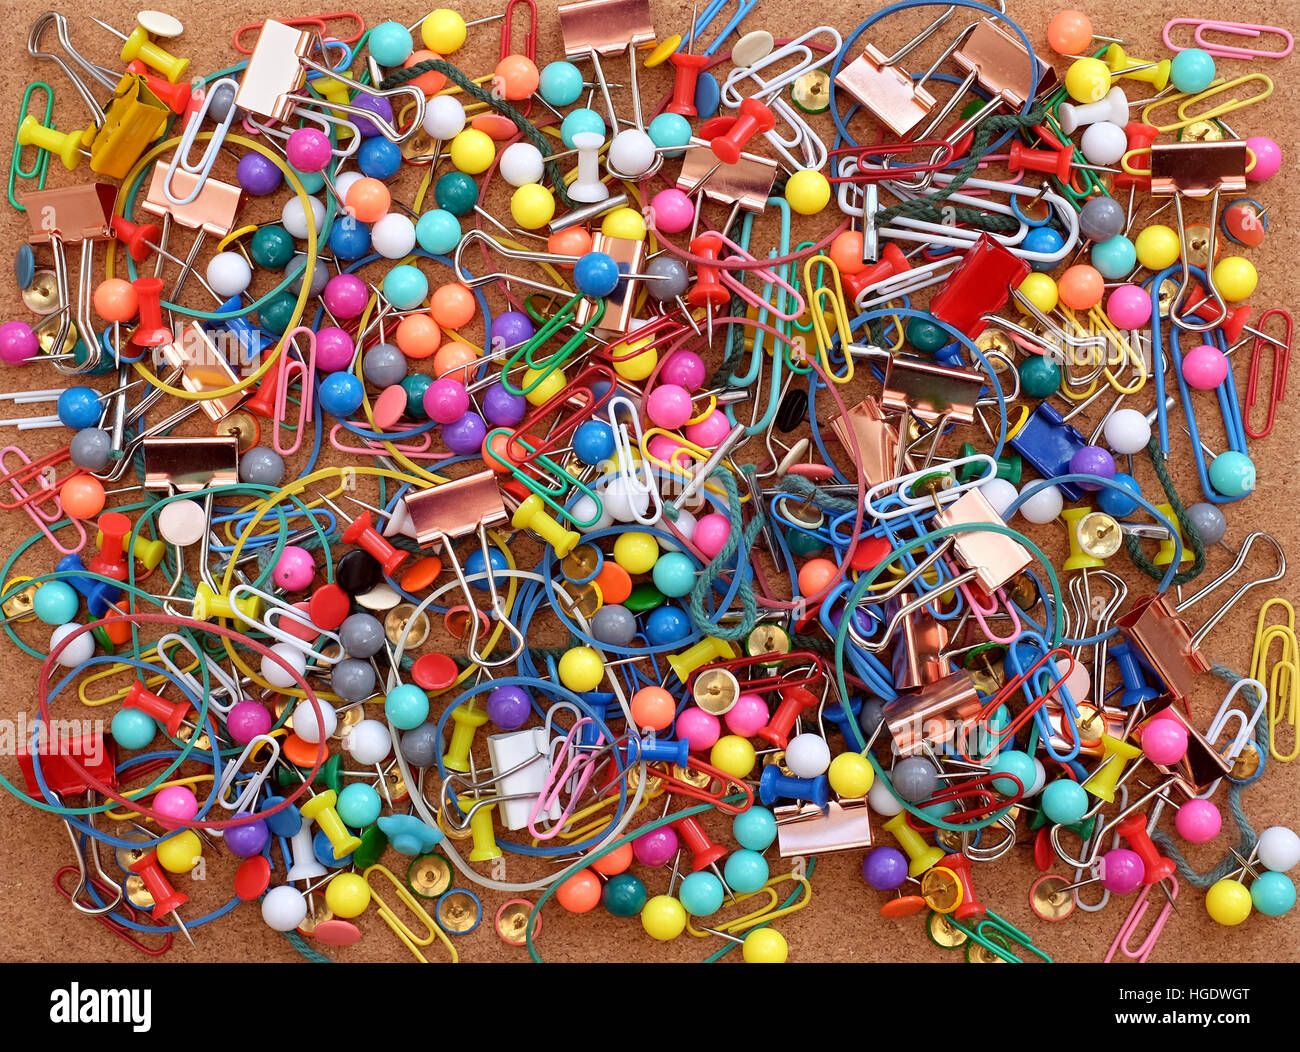 stationery on cork background colorful paper clips rubber bands